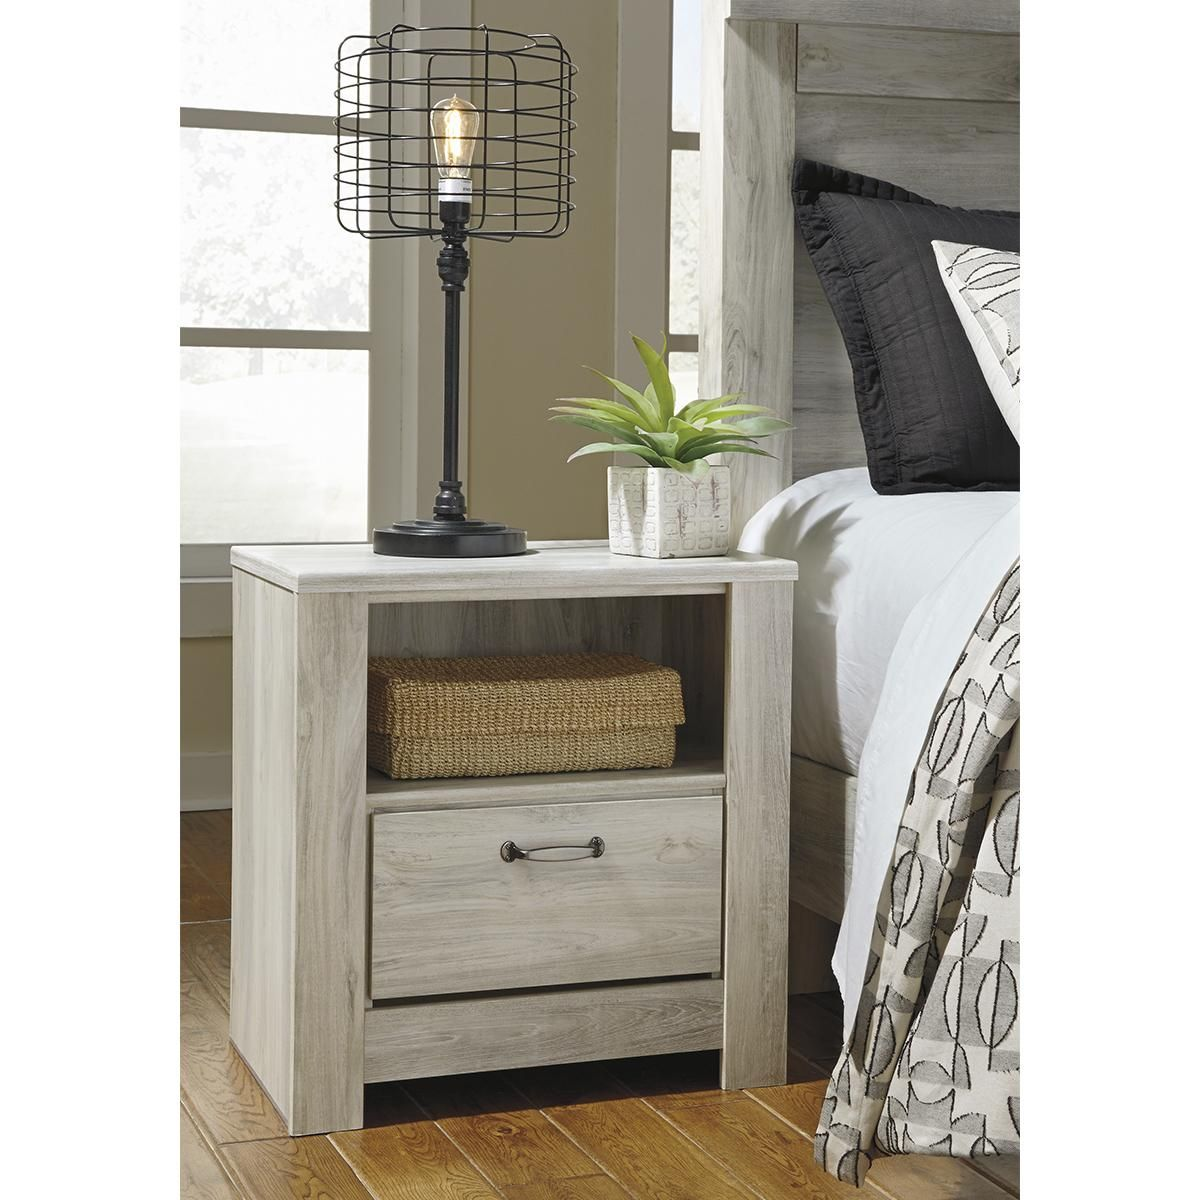 Signature Design by Ashley Bellaby 1 Drawer Nightstand in